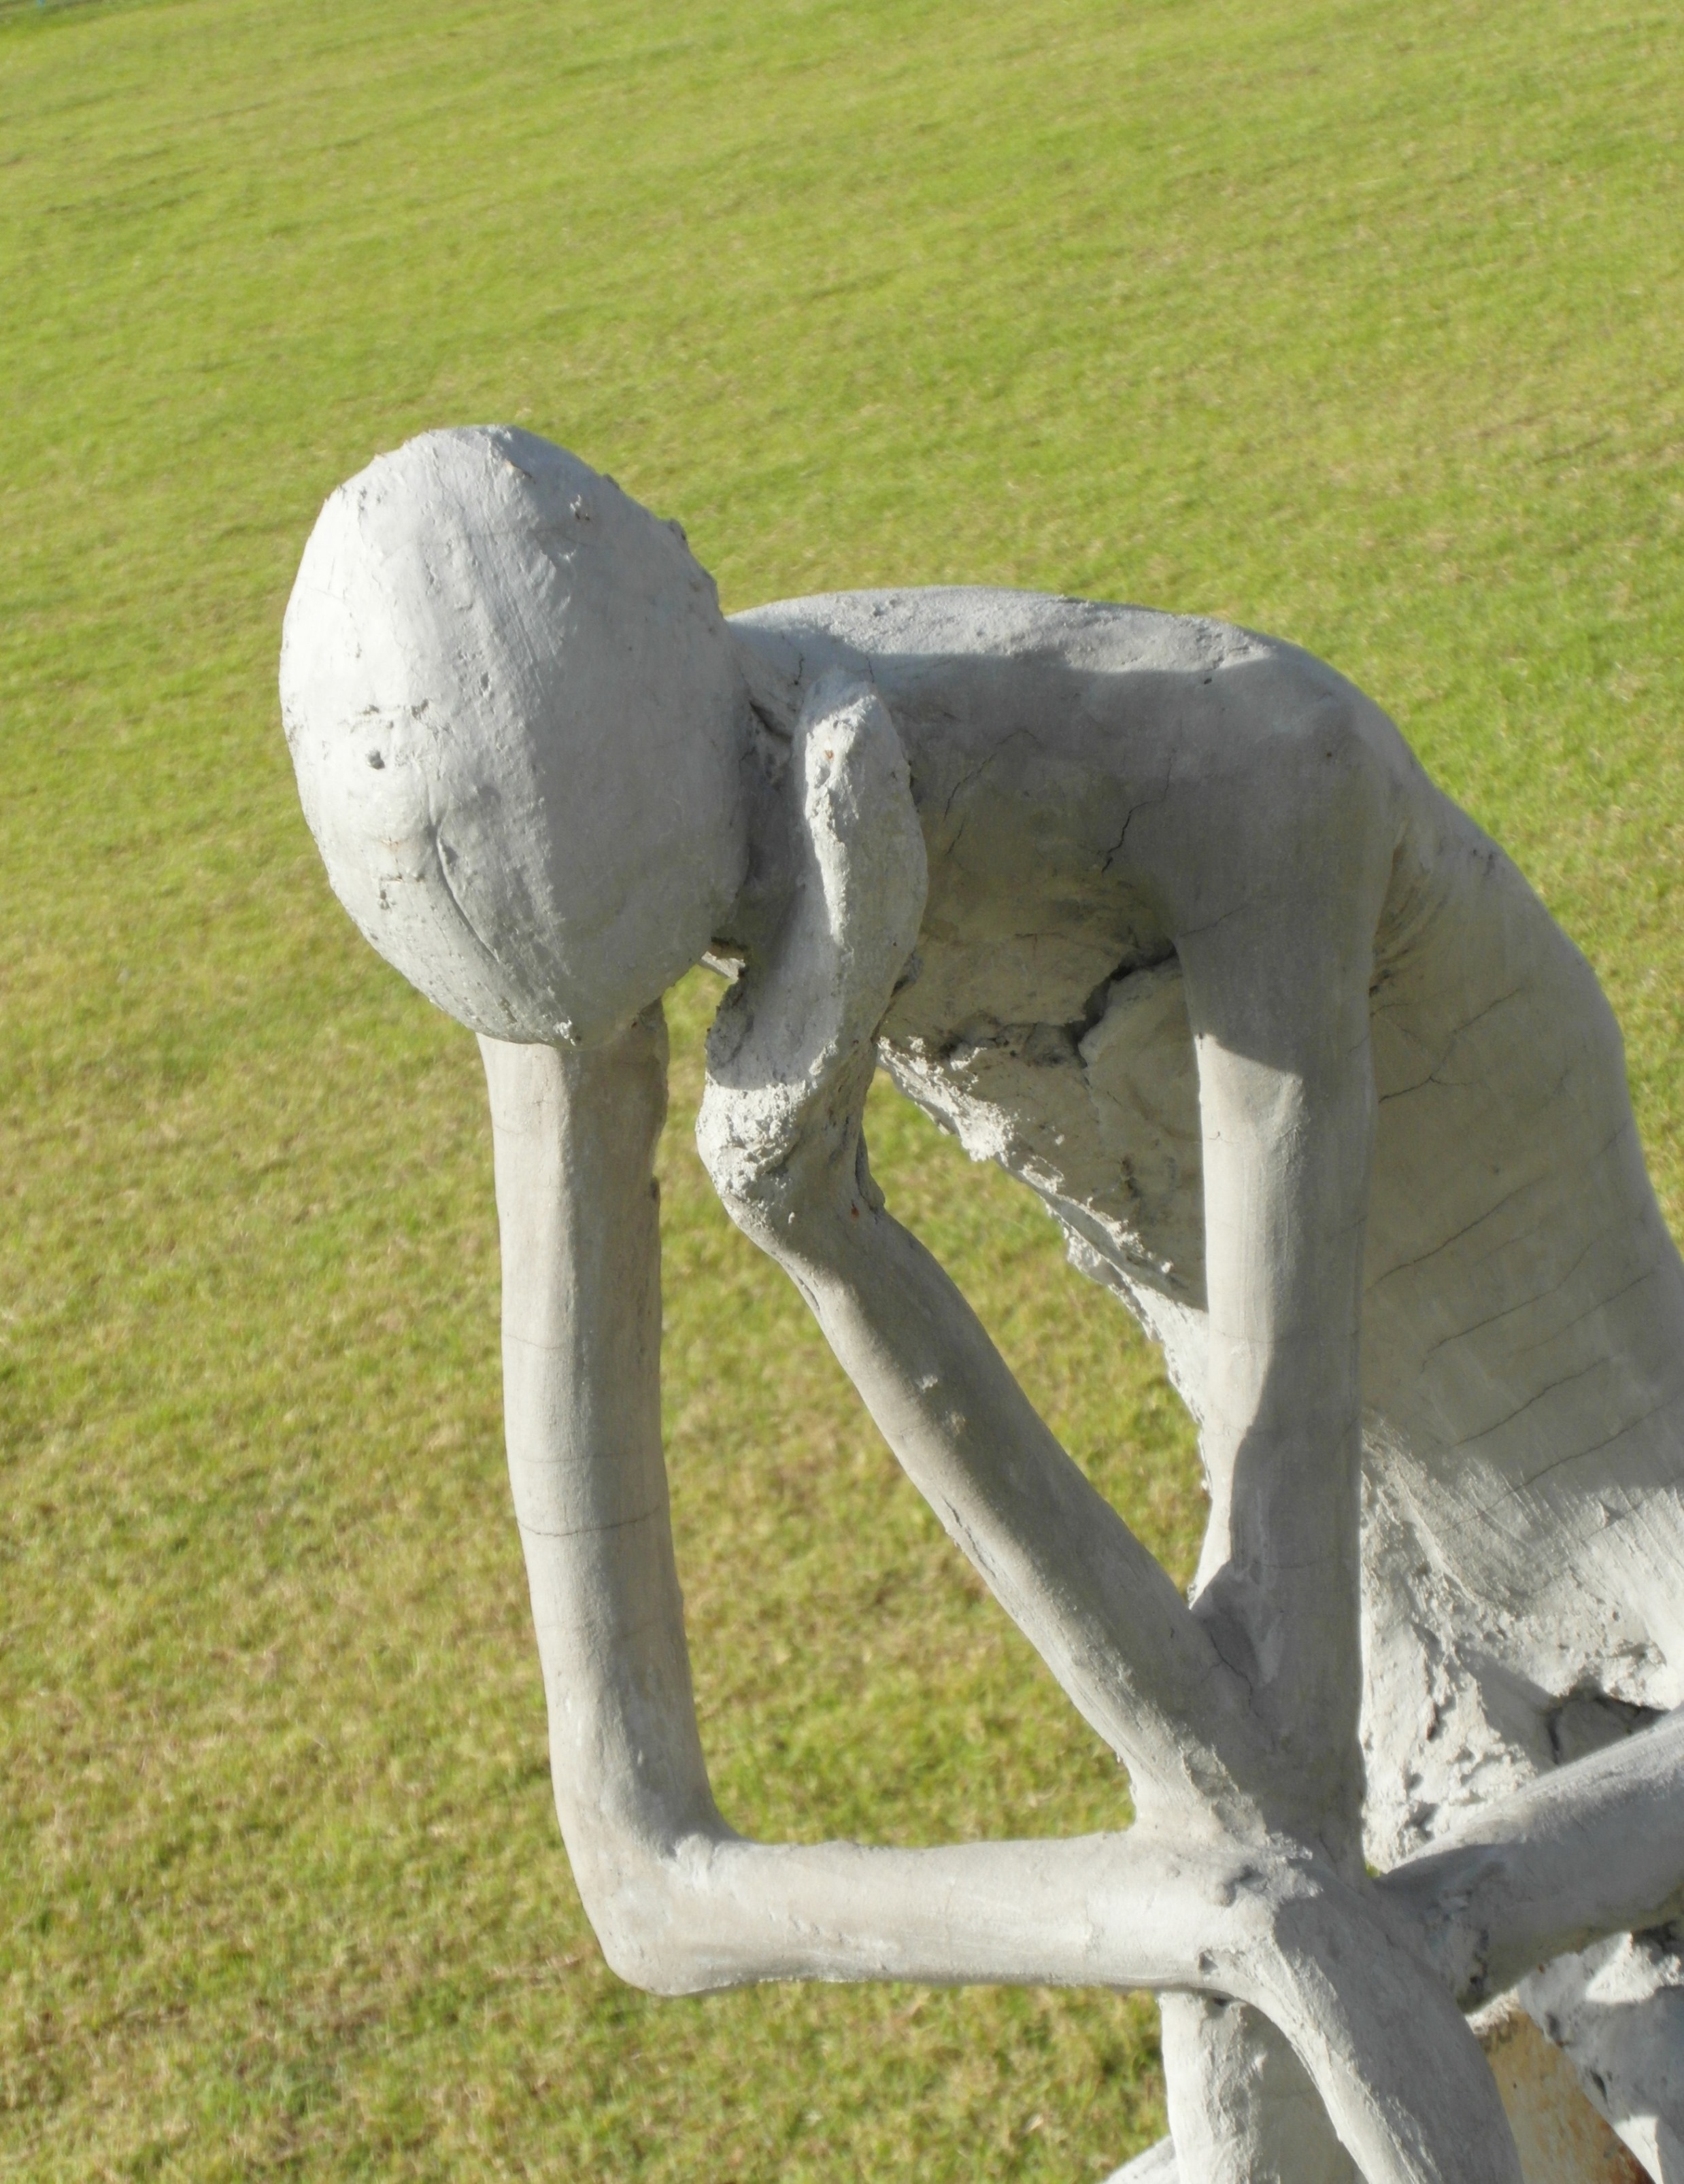 The Thinker, Abstract, Problem, Thought, Thinking, HQ Photo